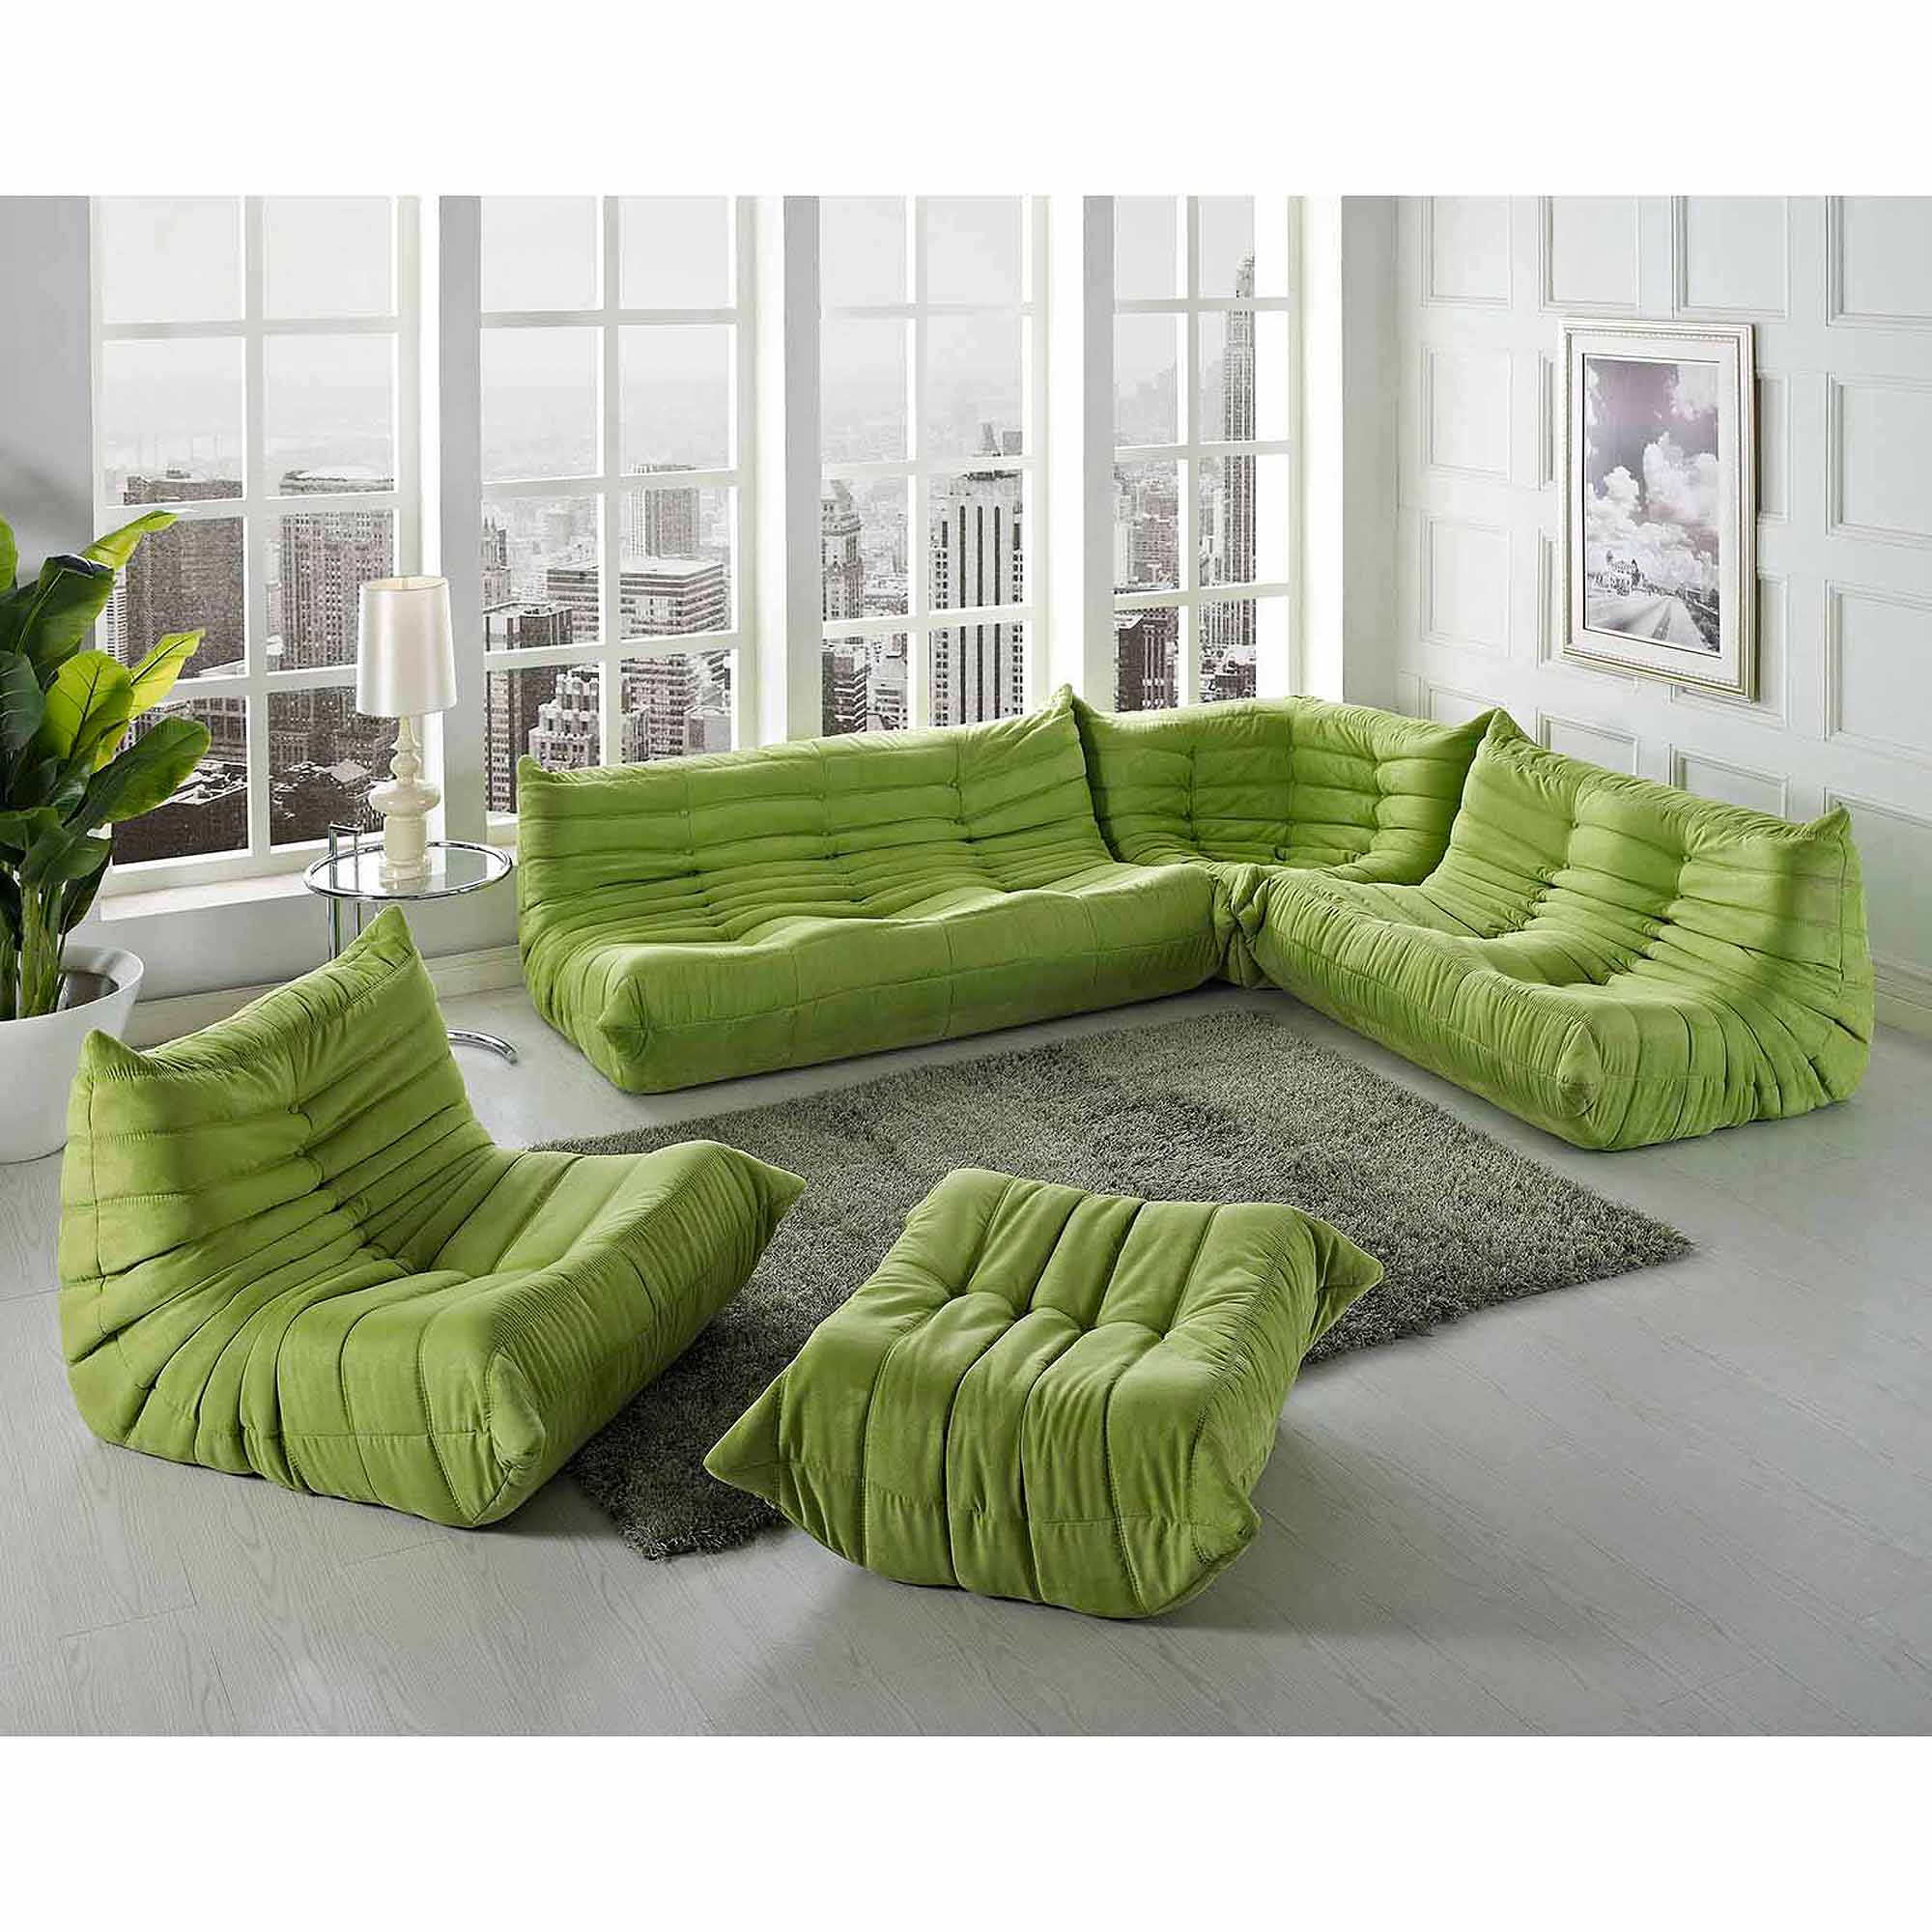 Modway Waverunner Sofa Set Multiple Colors Walmart